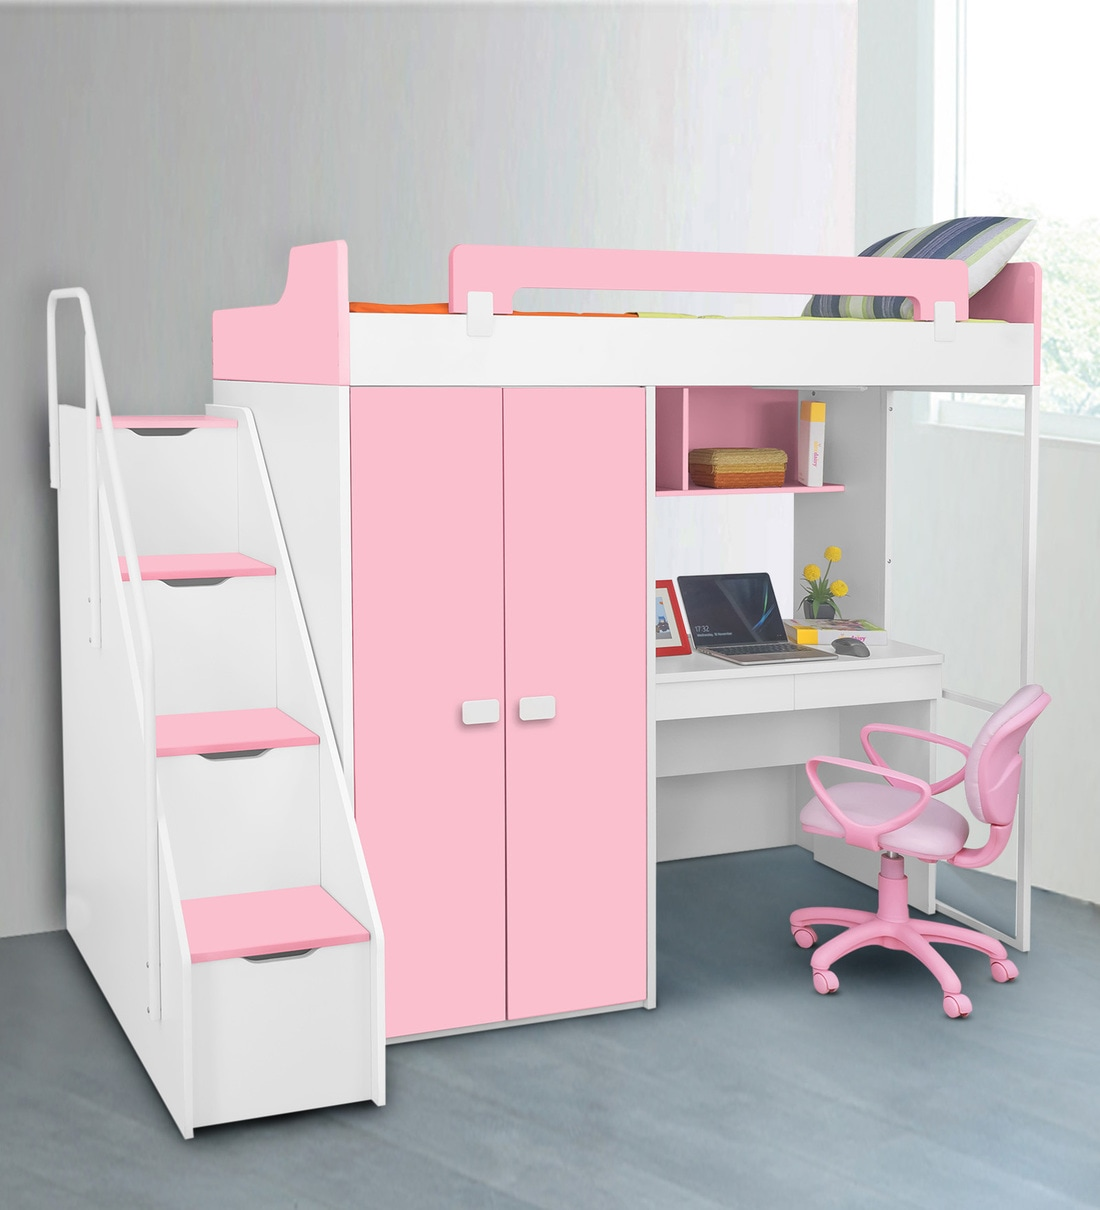 Picture of: Buy Boston Study Bunk Bed In Pink By Alex Daisy Online Bed Units Kids Furniture Kids Furniture Pepperfry Product